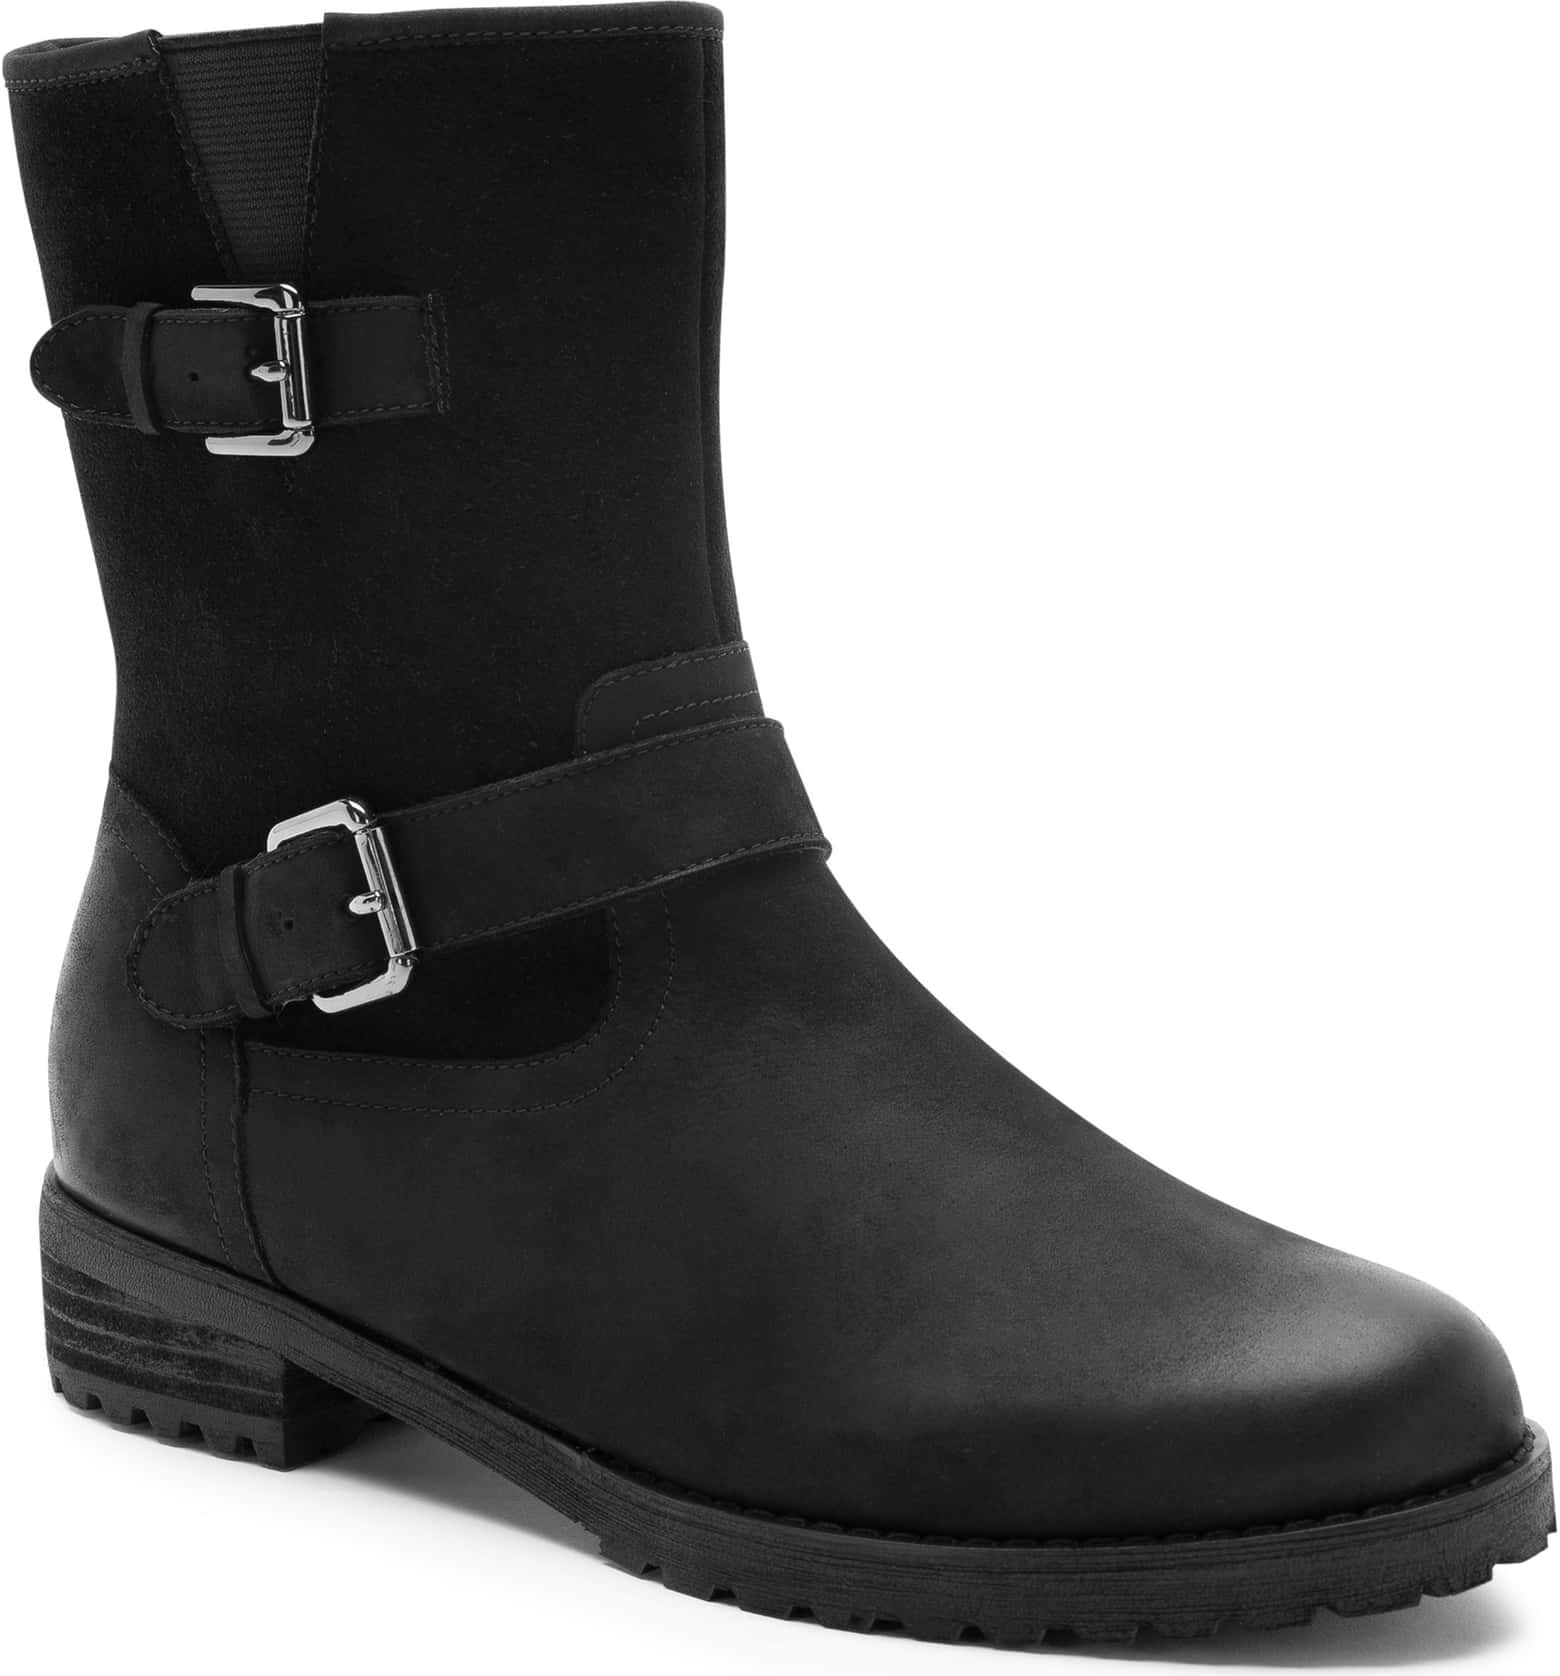 the black boot with buckle around the ankle